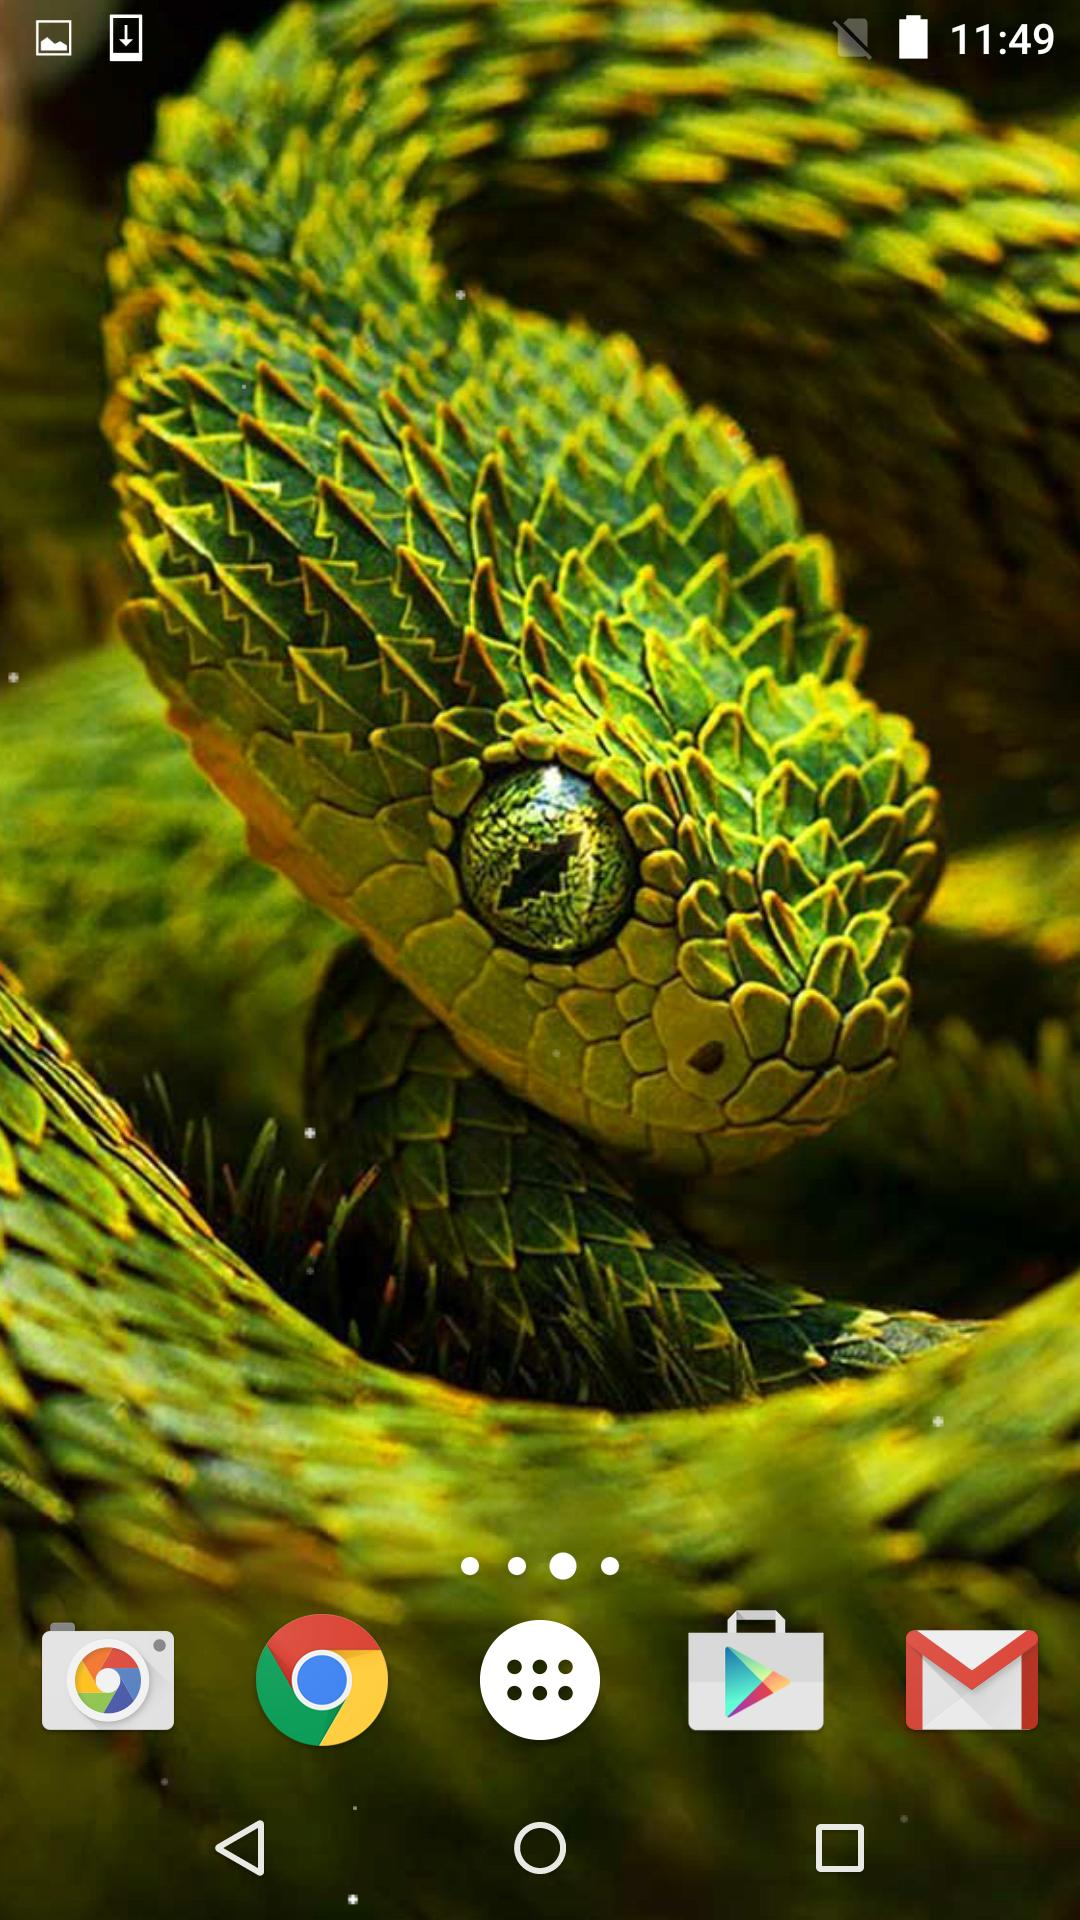 Snake Live Wallpaper HD for Android - APK Download